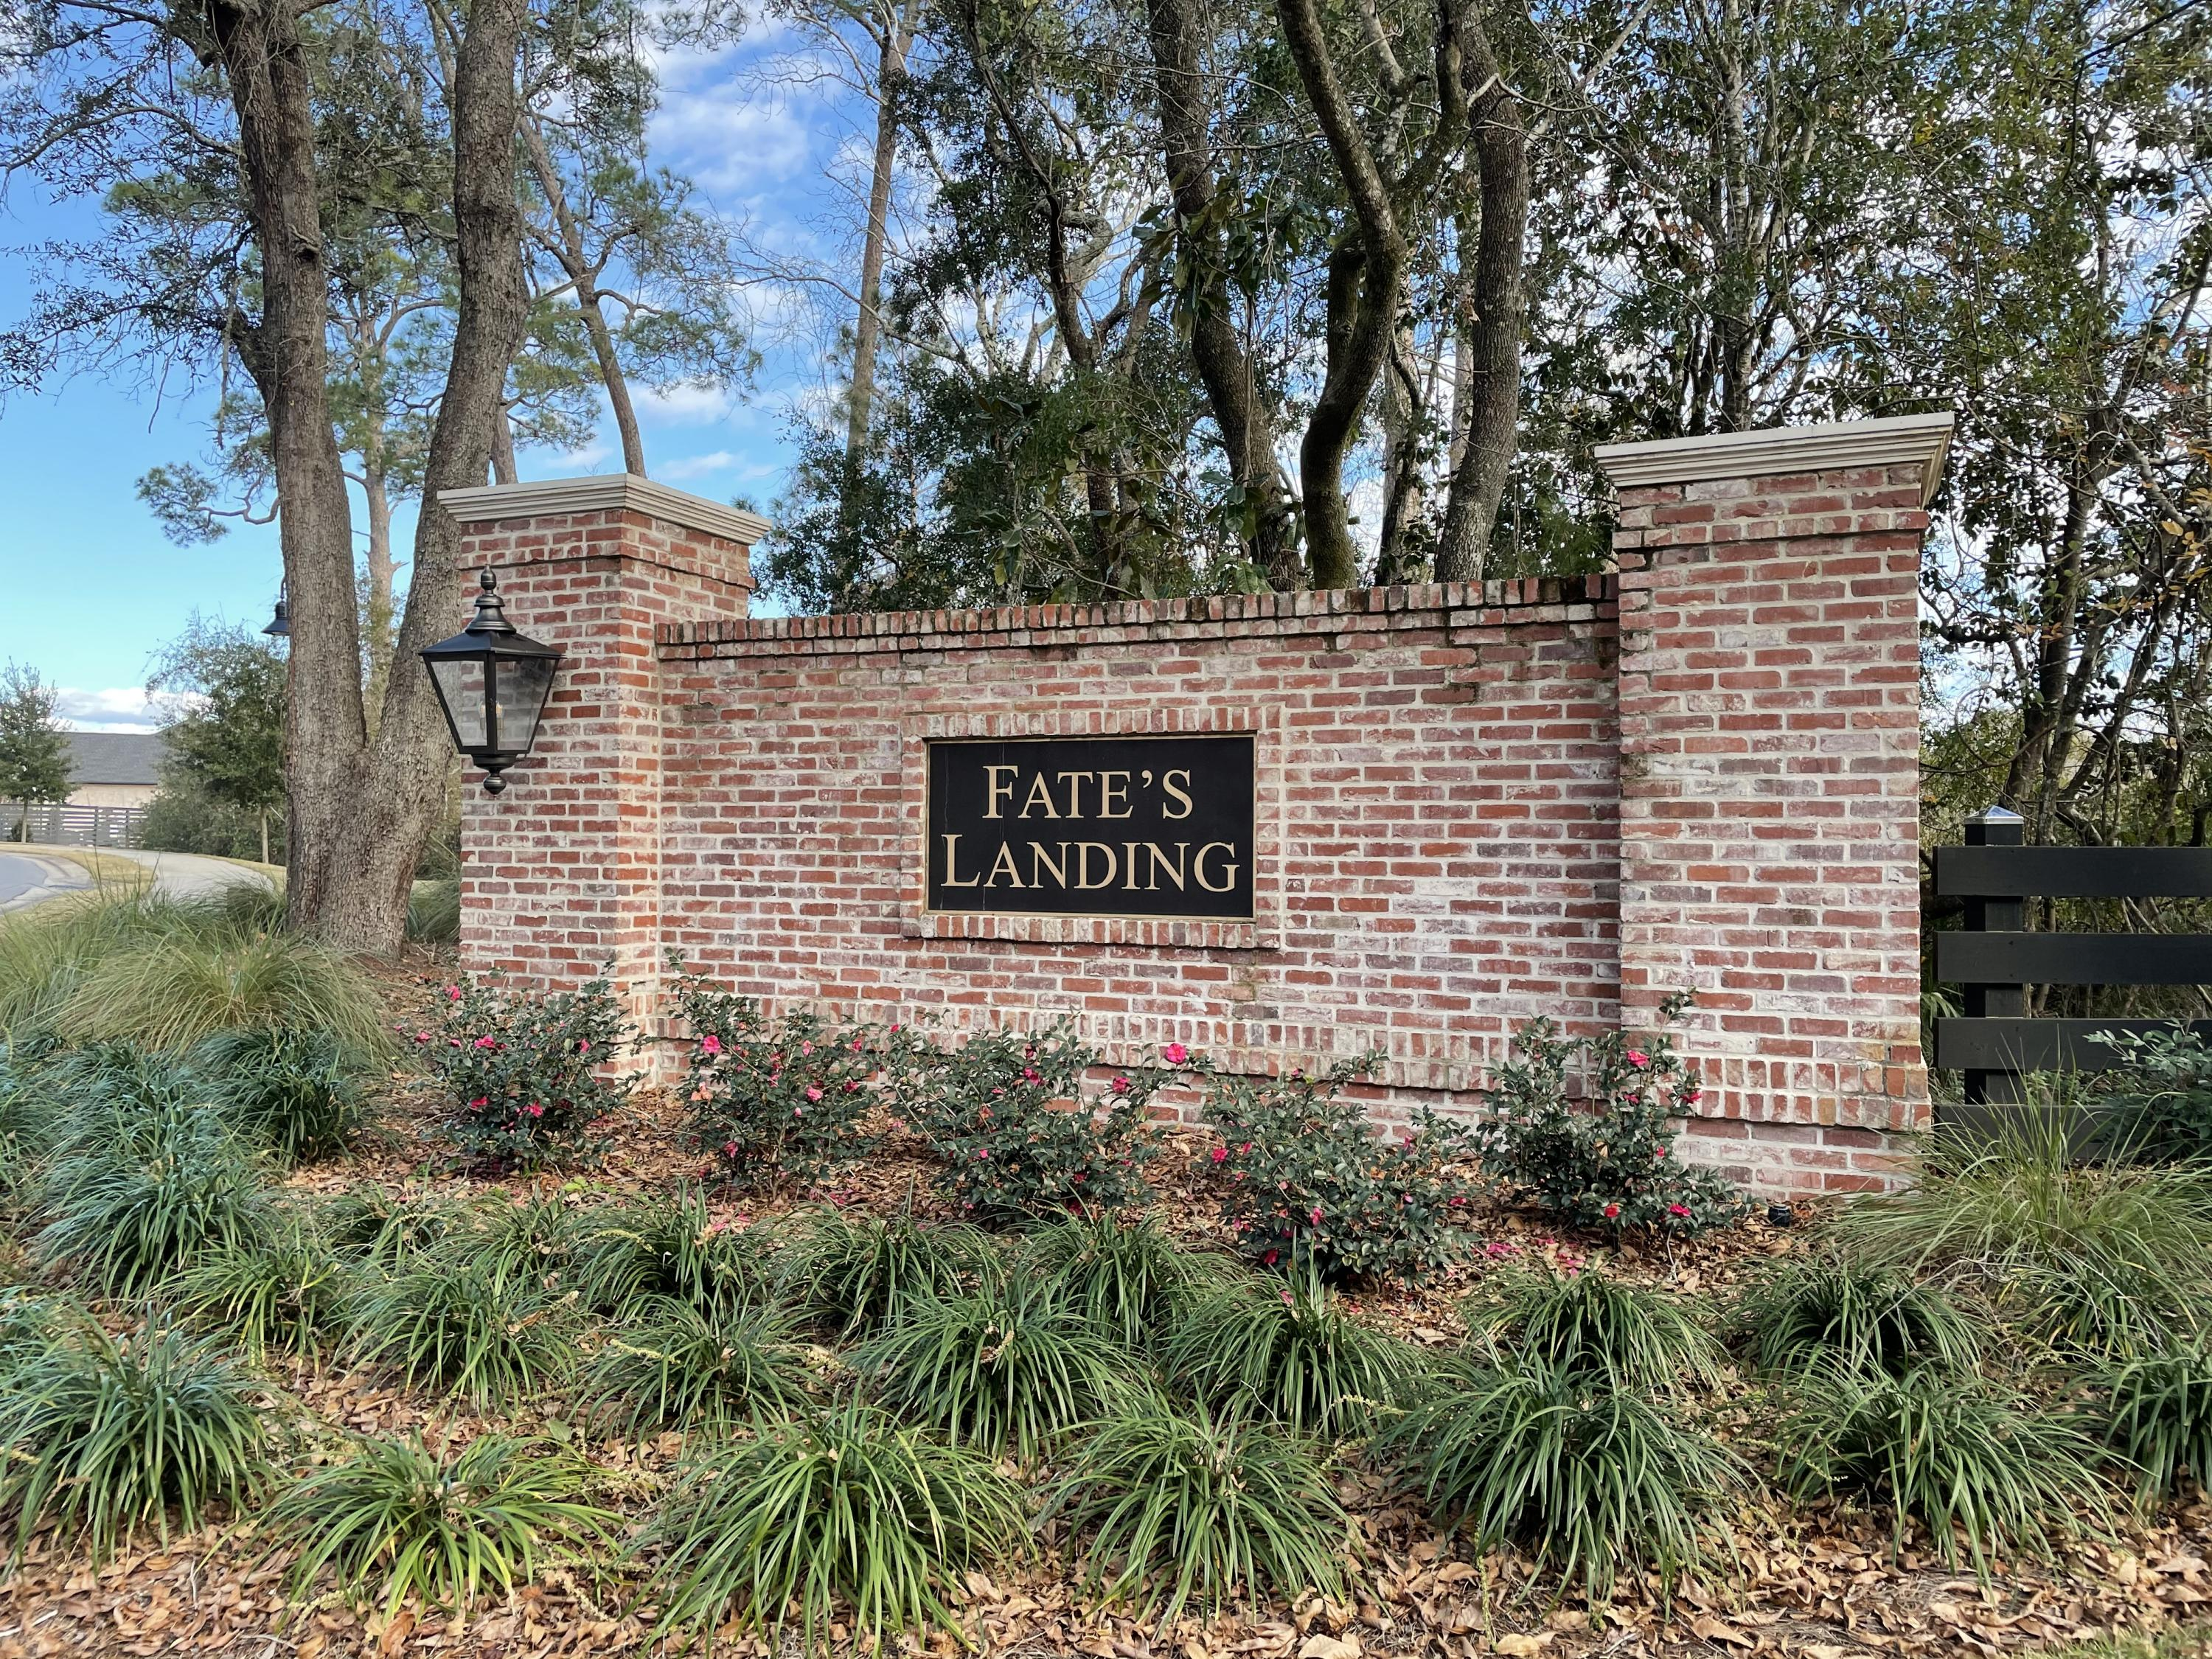 A 3 Bedroom 3 Bedroom Fate's Landing At Bluewater Bay Home